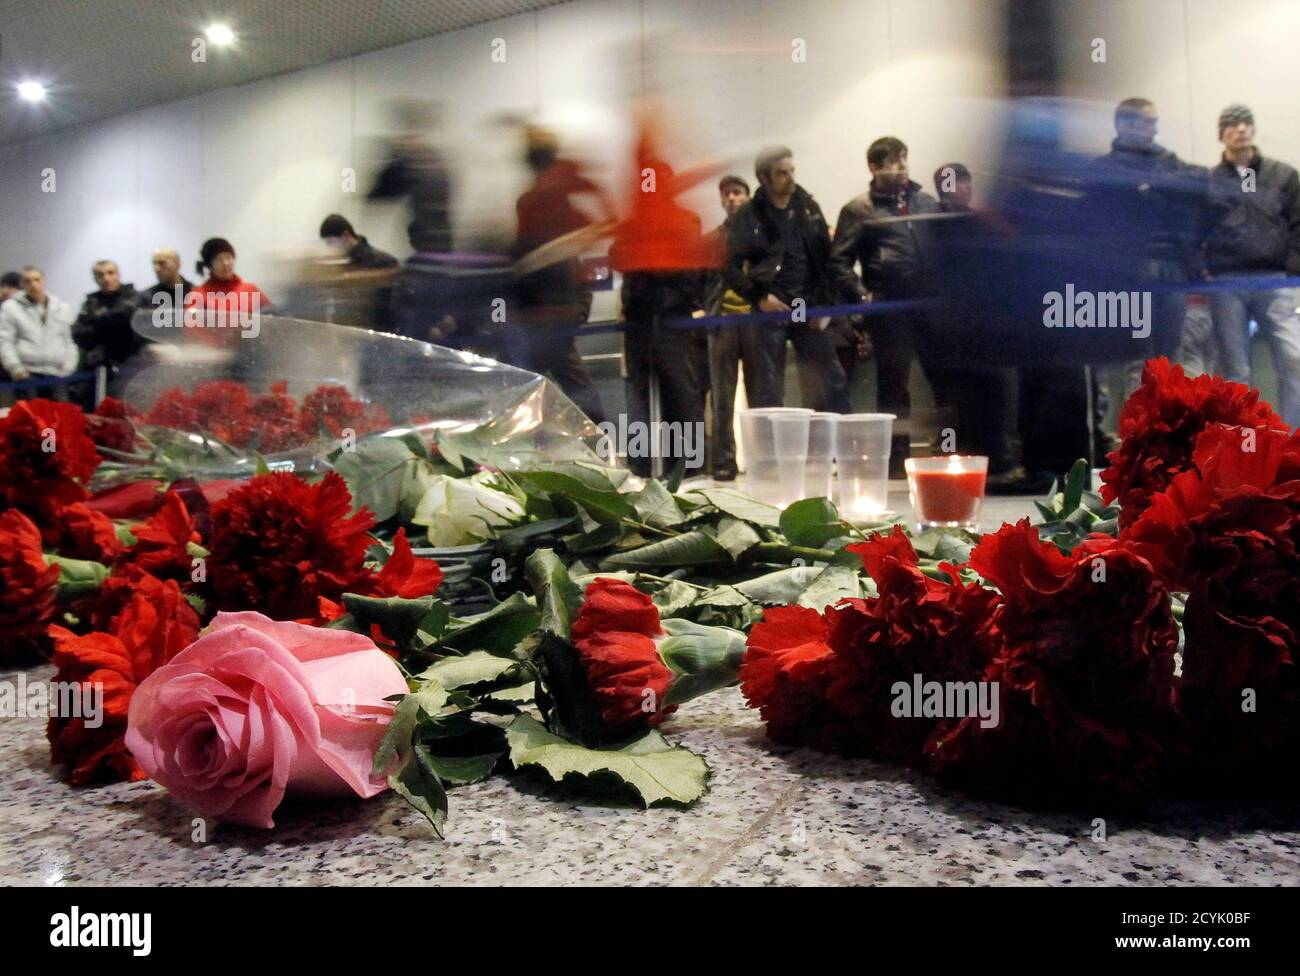 People walk past flowers left on a floor in memory of those killed in Monday's blast at Moscow's Domodedovo airport January 25, 2011. Russia's President Dmitry Medvedev ordered investigators on Tuesday to root out the culprits behind a deadly bombing at Russia's busiest airport and threatened sackings over security lapses he said had aided the attack. REUTERS/Denis Sinyakov (RUSSIA - Tags: CRIME LAW TRANSPORT IMAGES OF THE DAY) Stock Photo